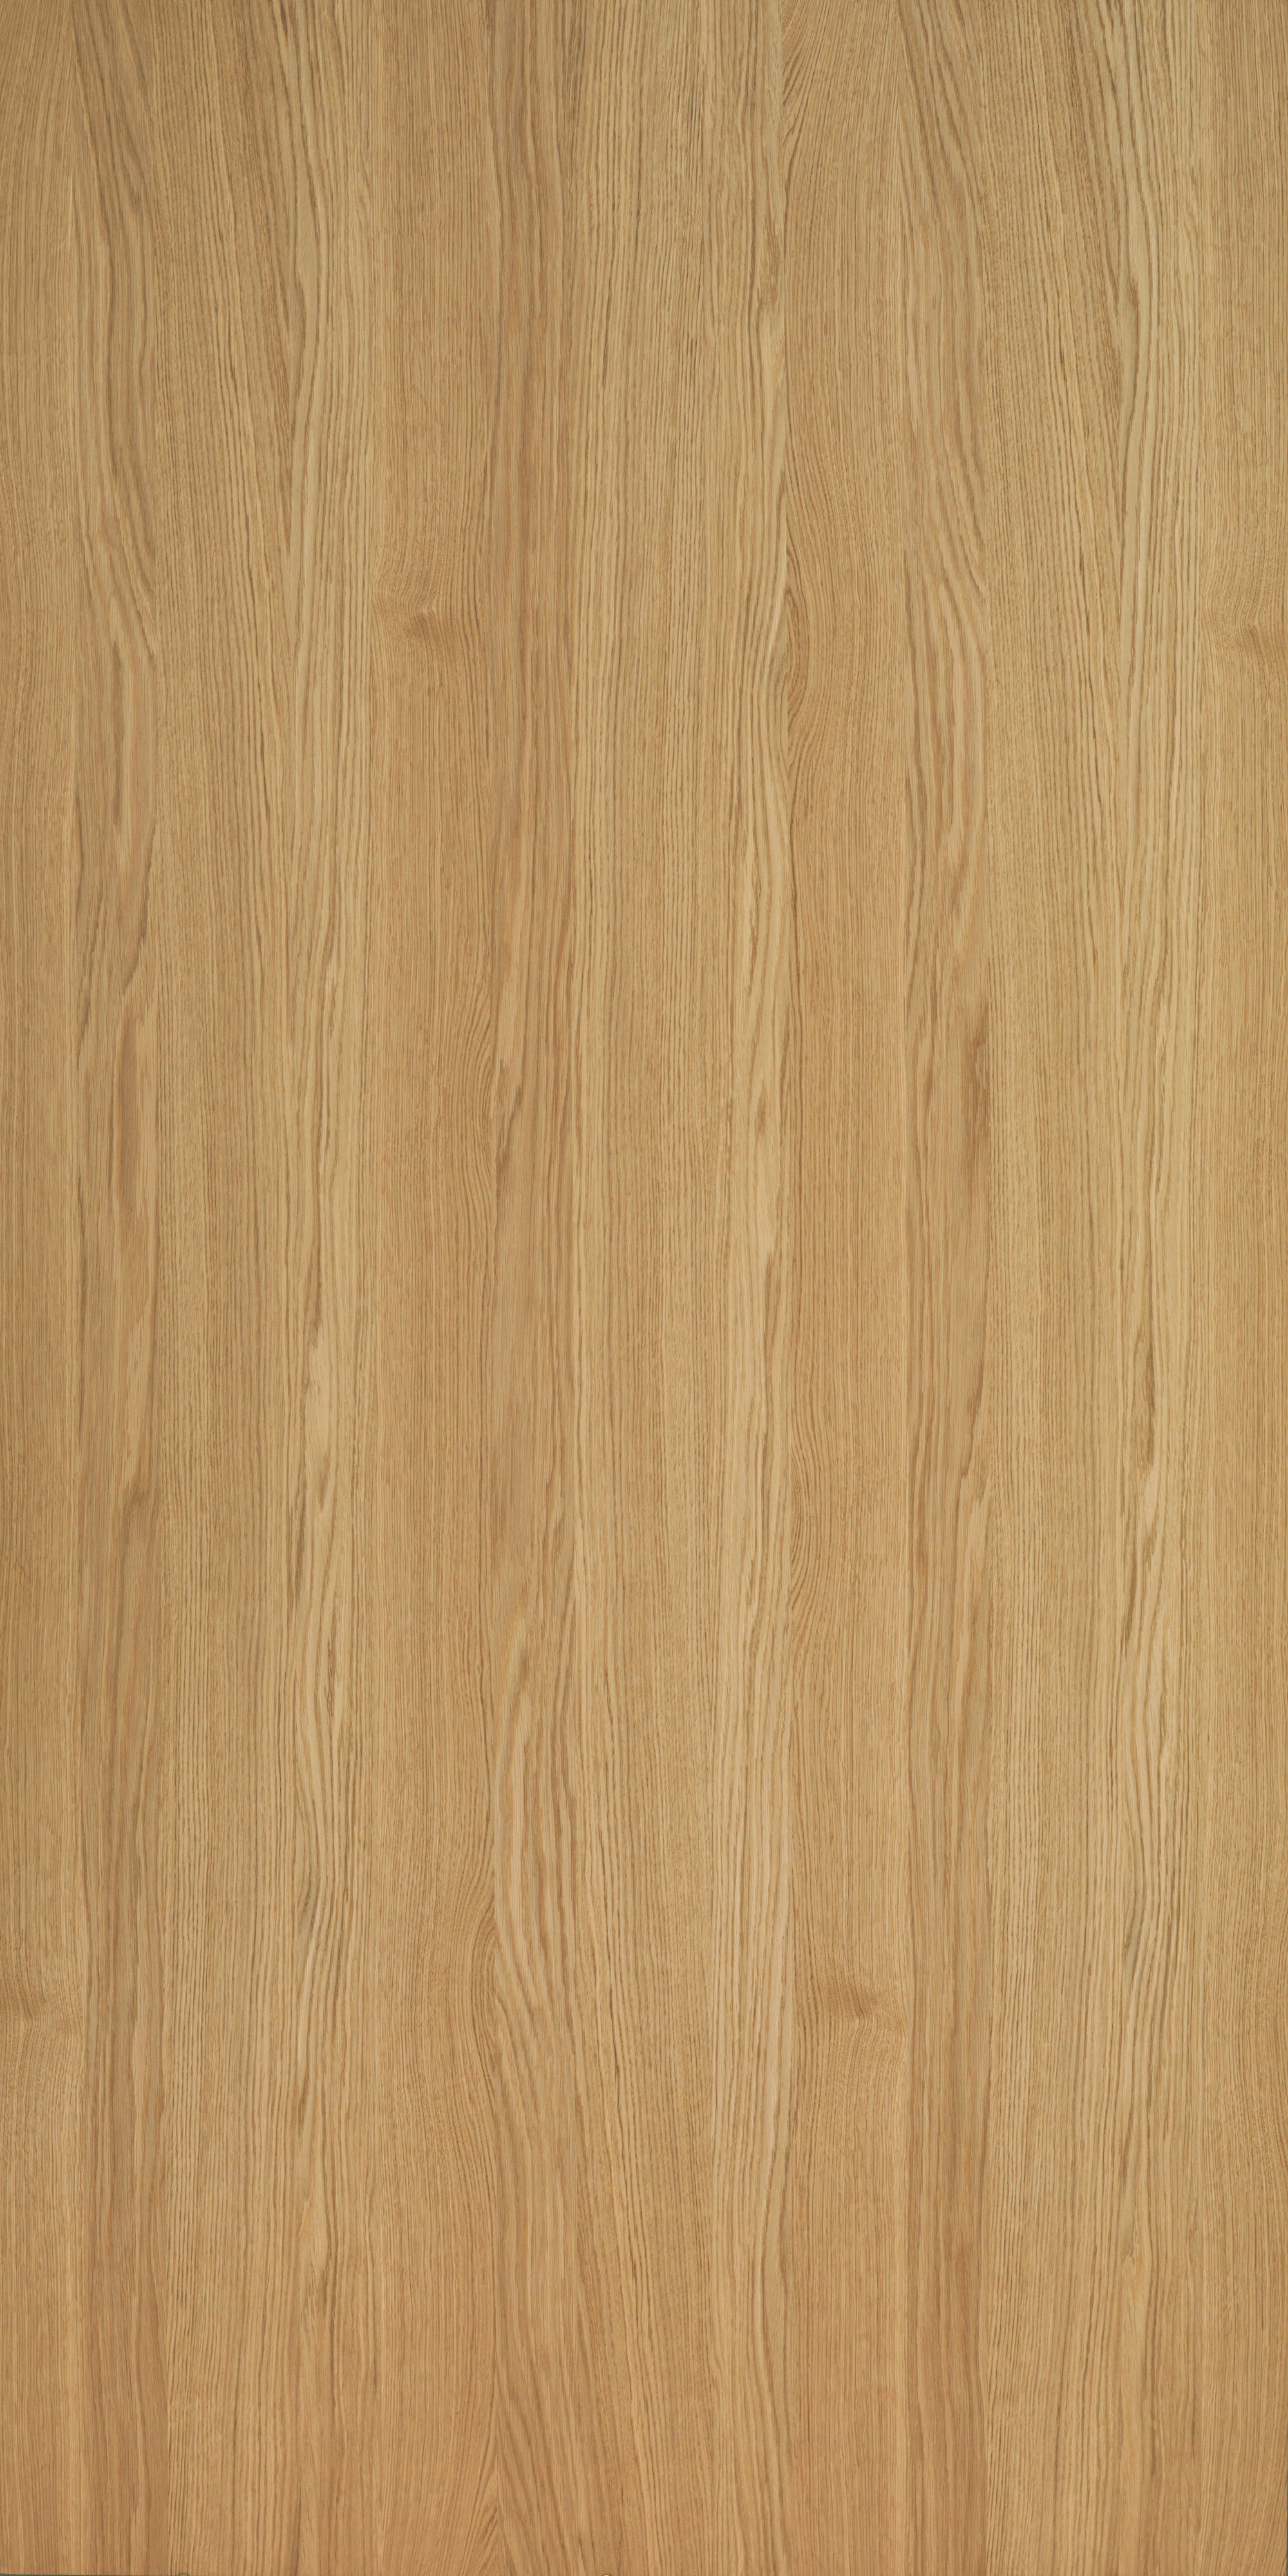 Oak Natural Querkus By Decospan